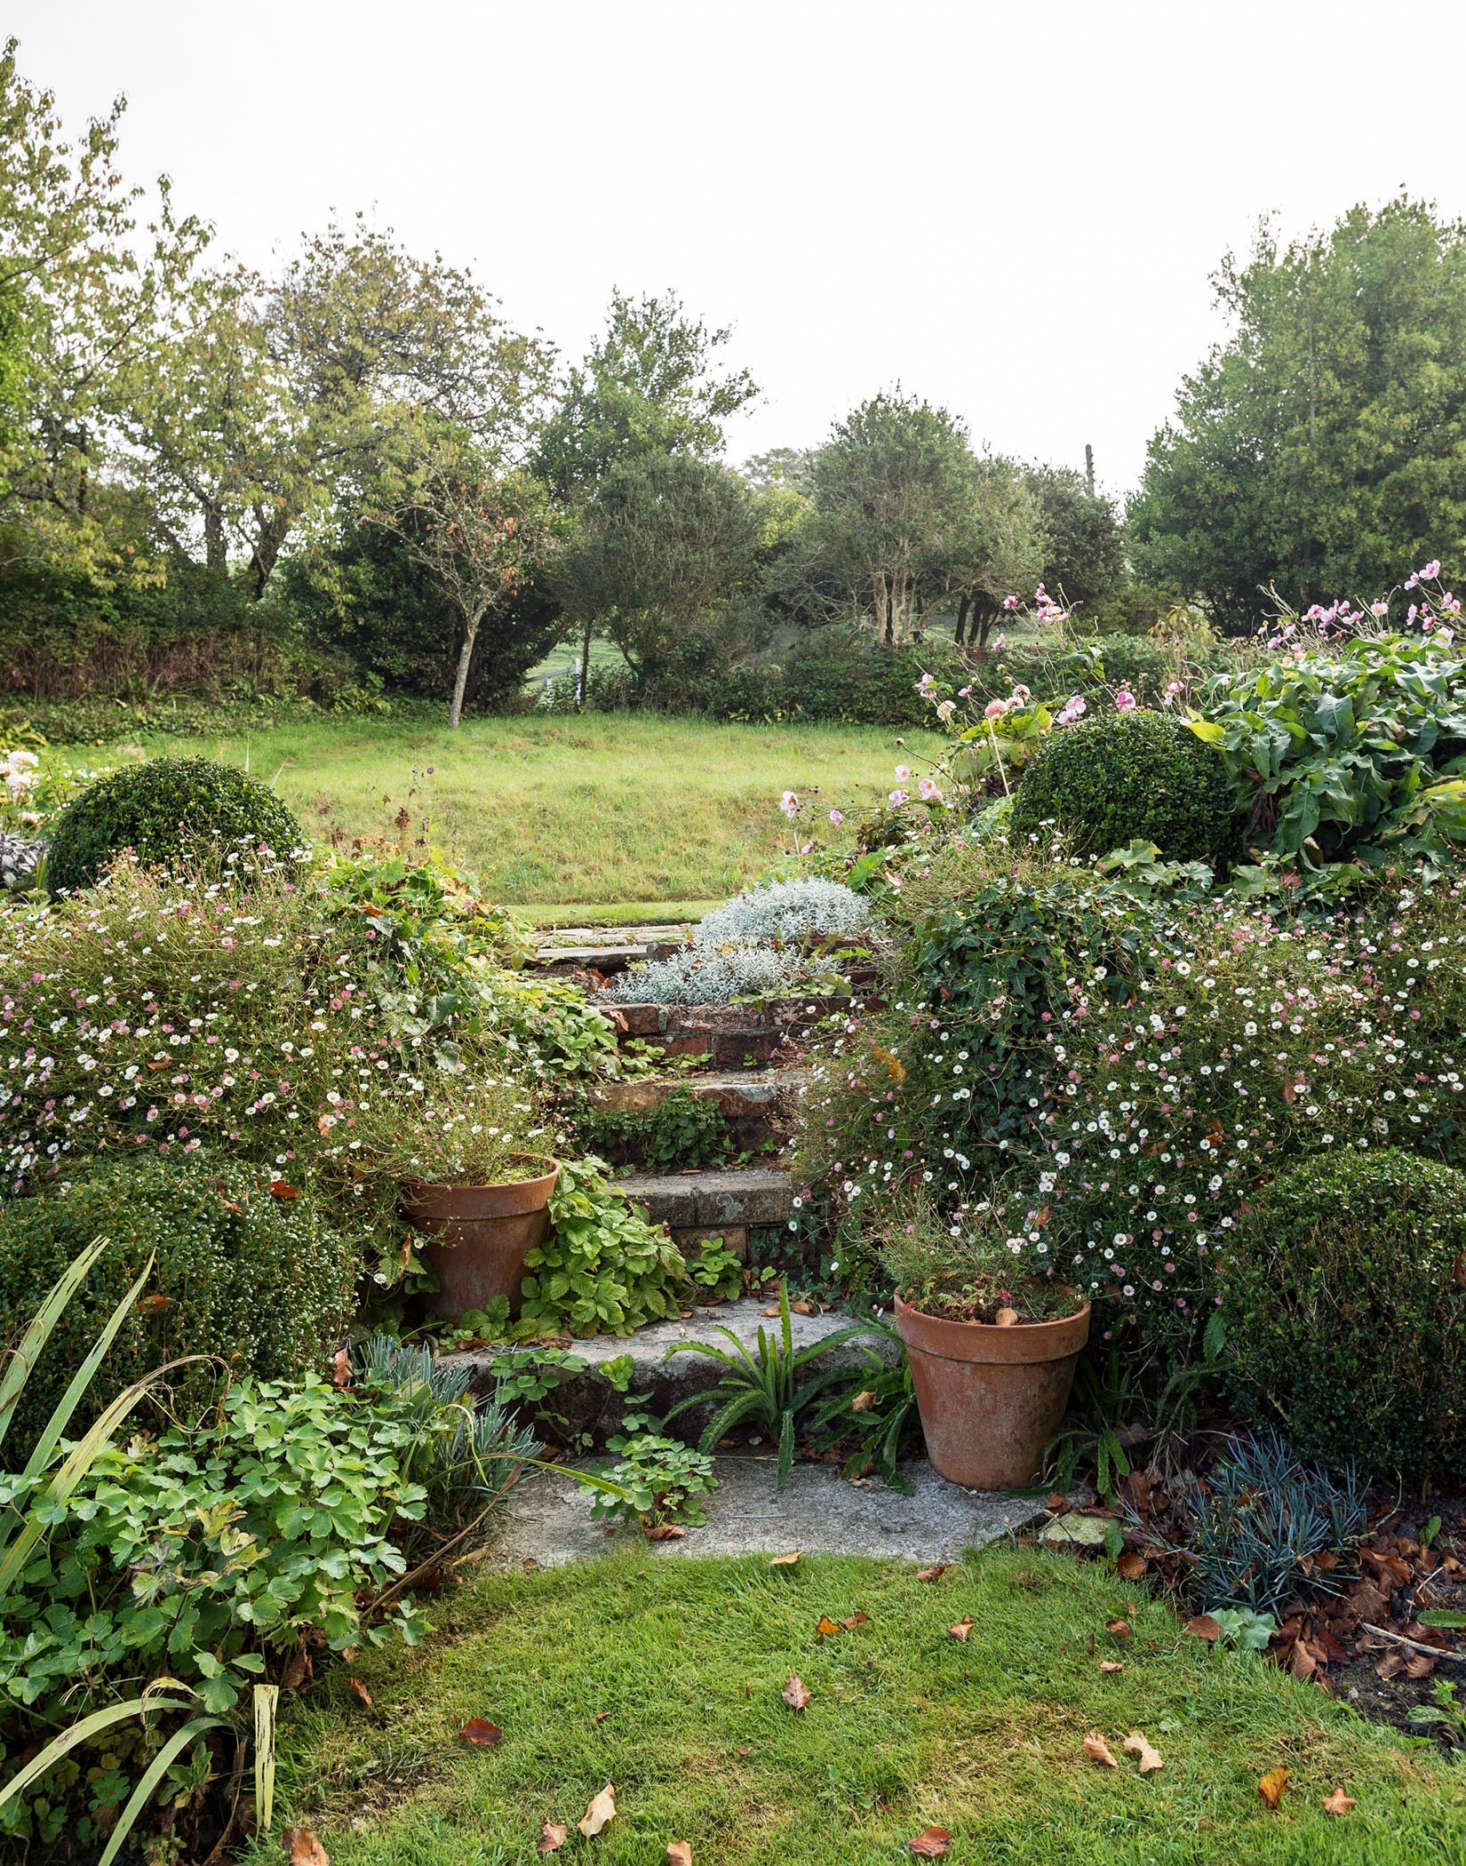 10 Landscape Design Tips You Need To Know To Get Started Gardenista